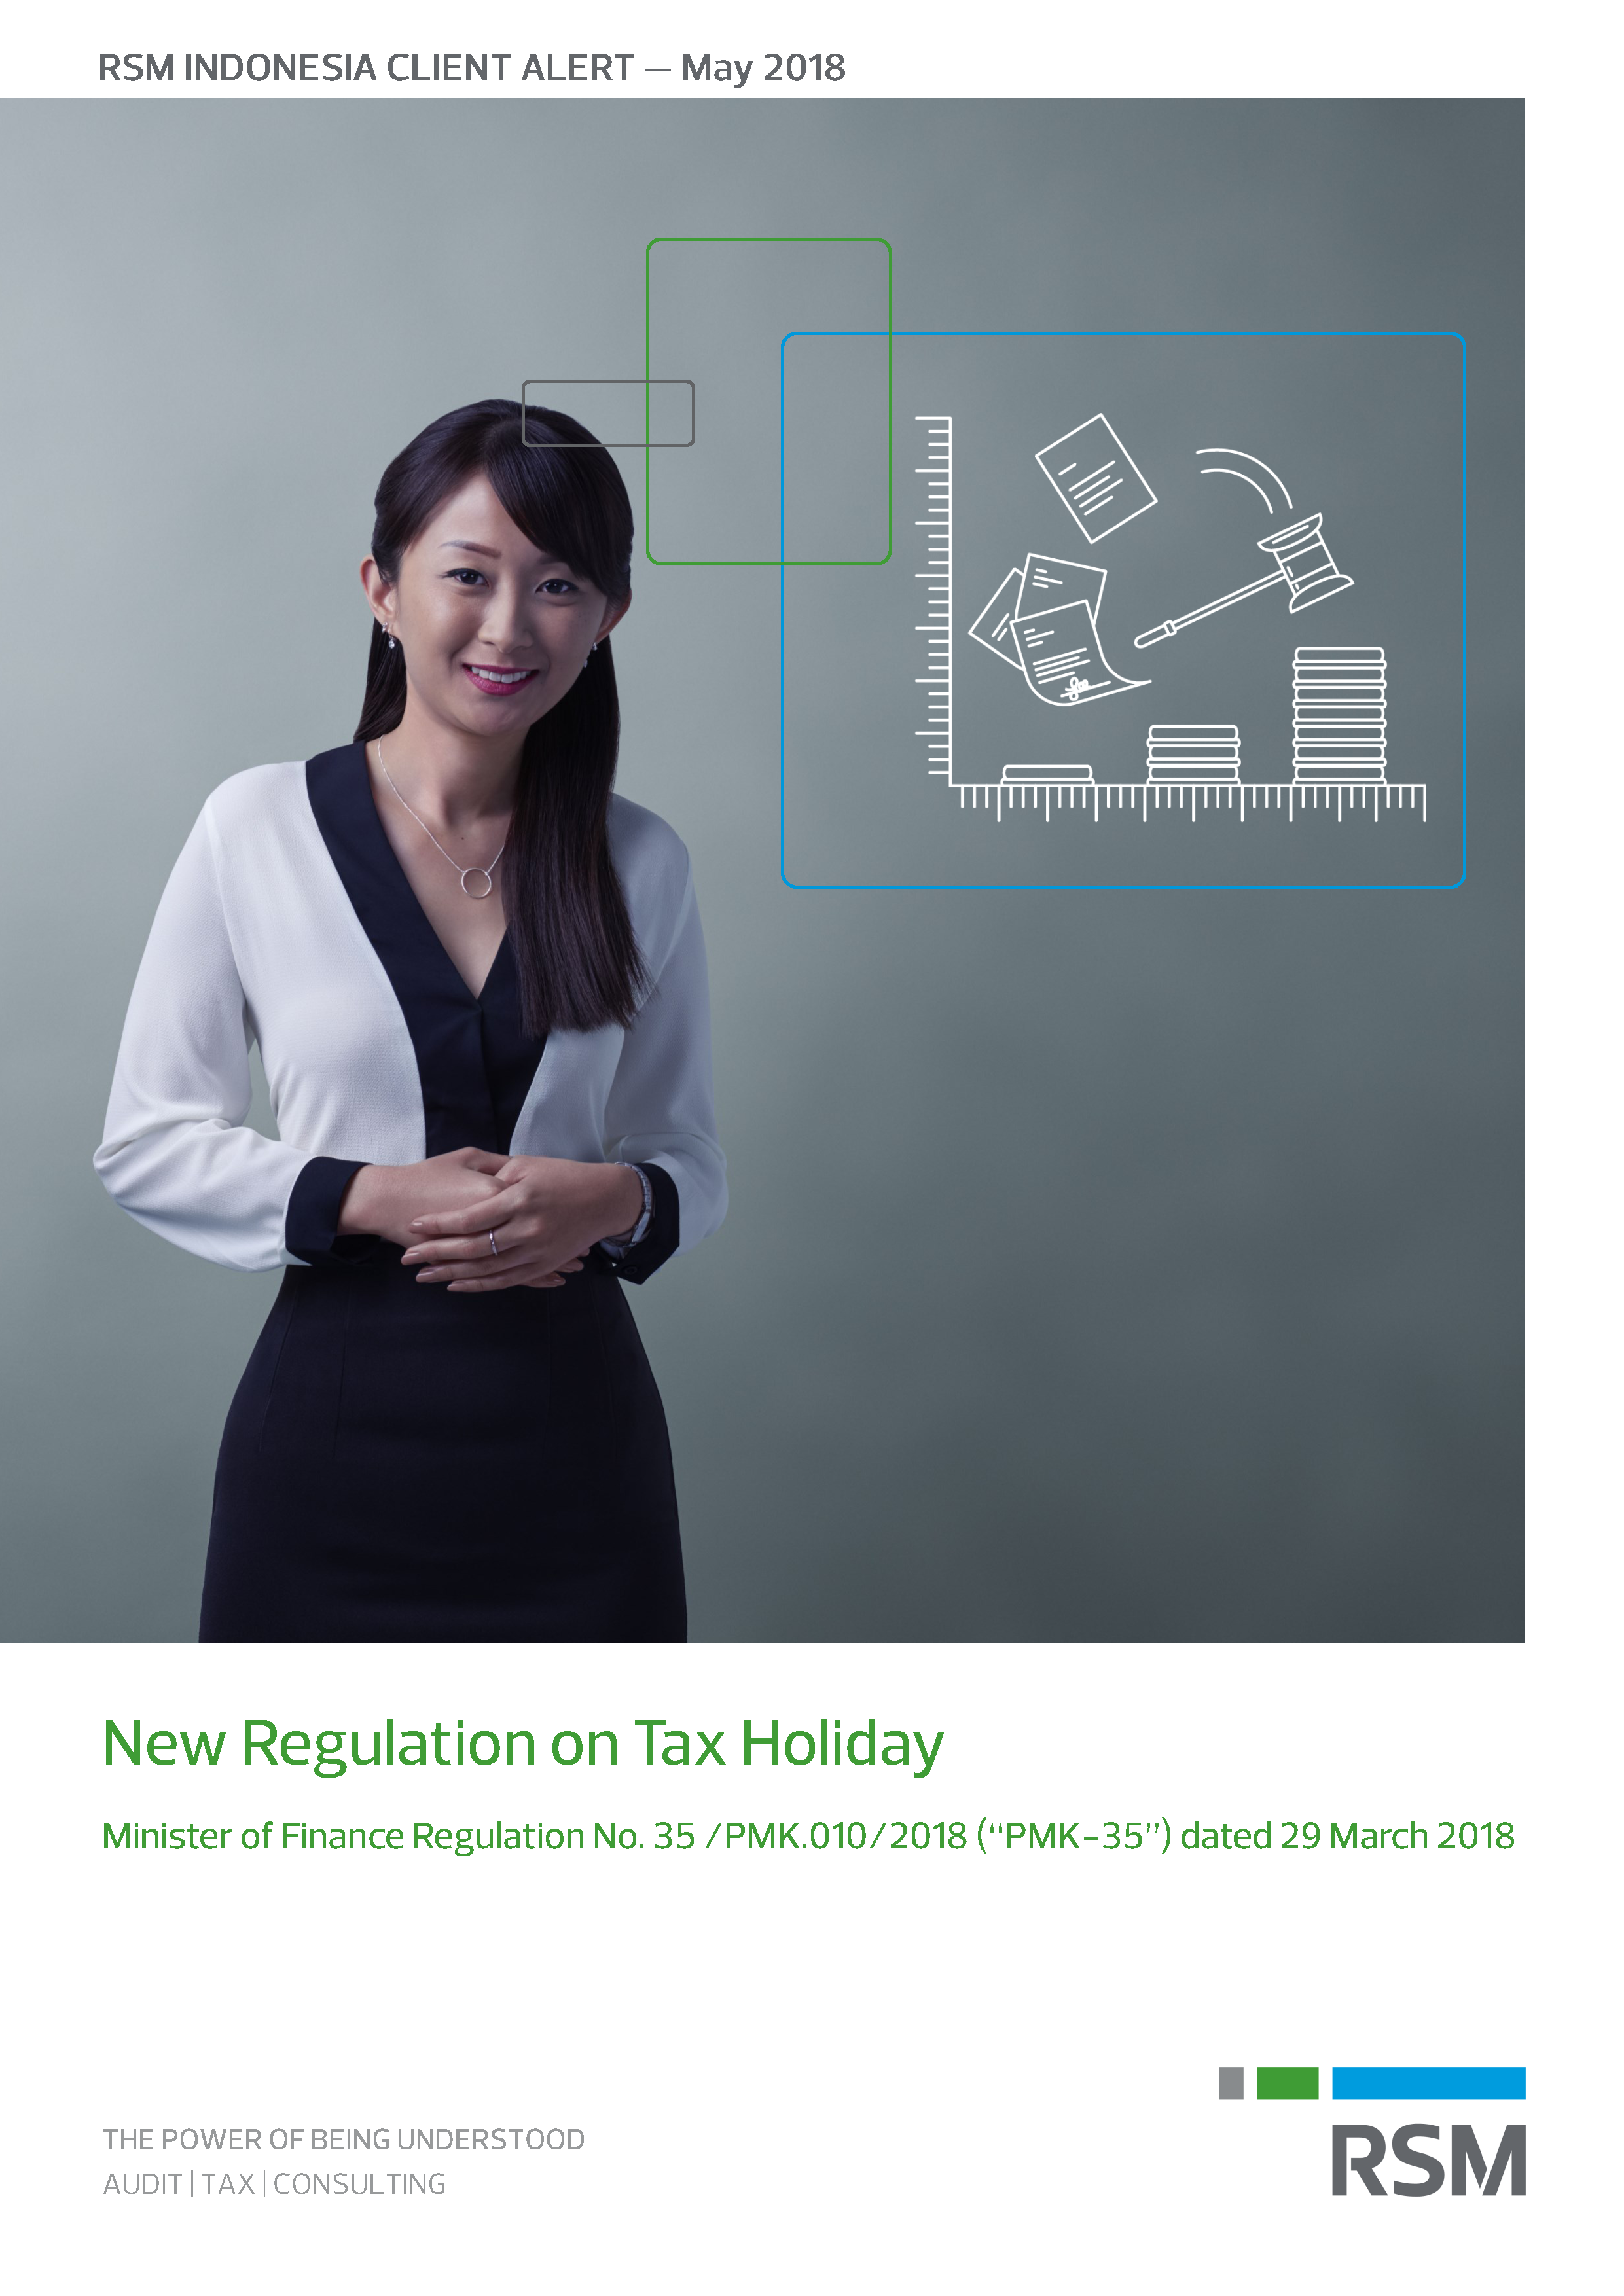 RSM Indonesia Client Alert - New Regulation on Tax Holiday.png